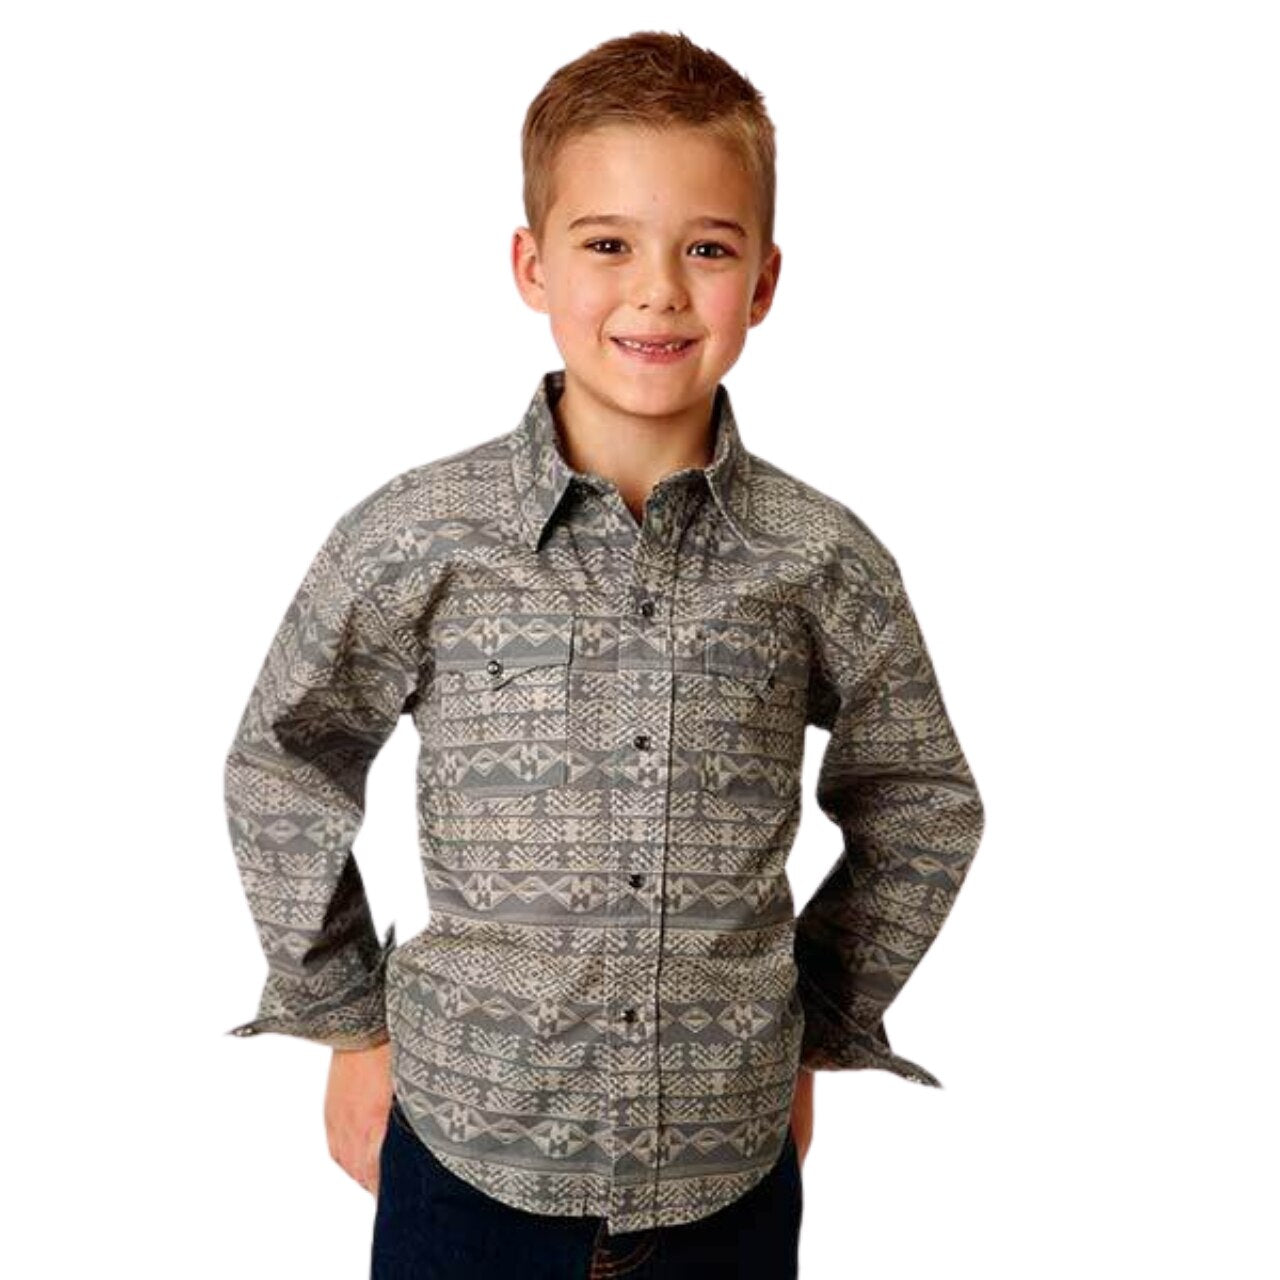 Roper Boy's L/S Pyramid Print Shirt KIDS - Boys - Clothing - Shirts - Long Sleeve Shirts ROPER APPAREL & FOOTWEAR Teskeys